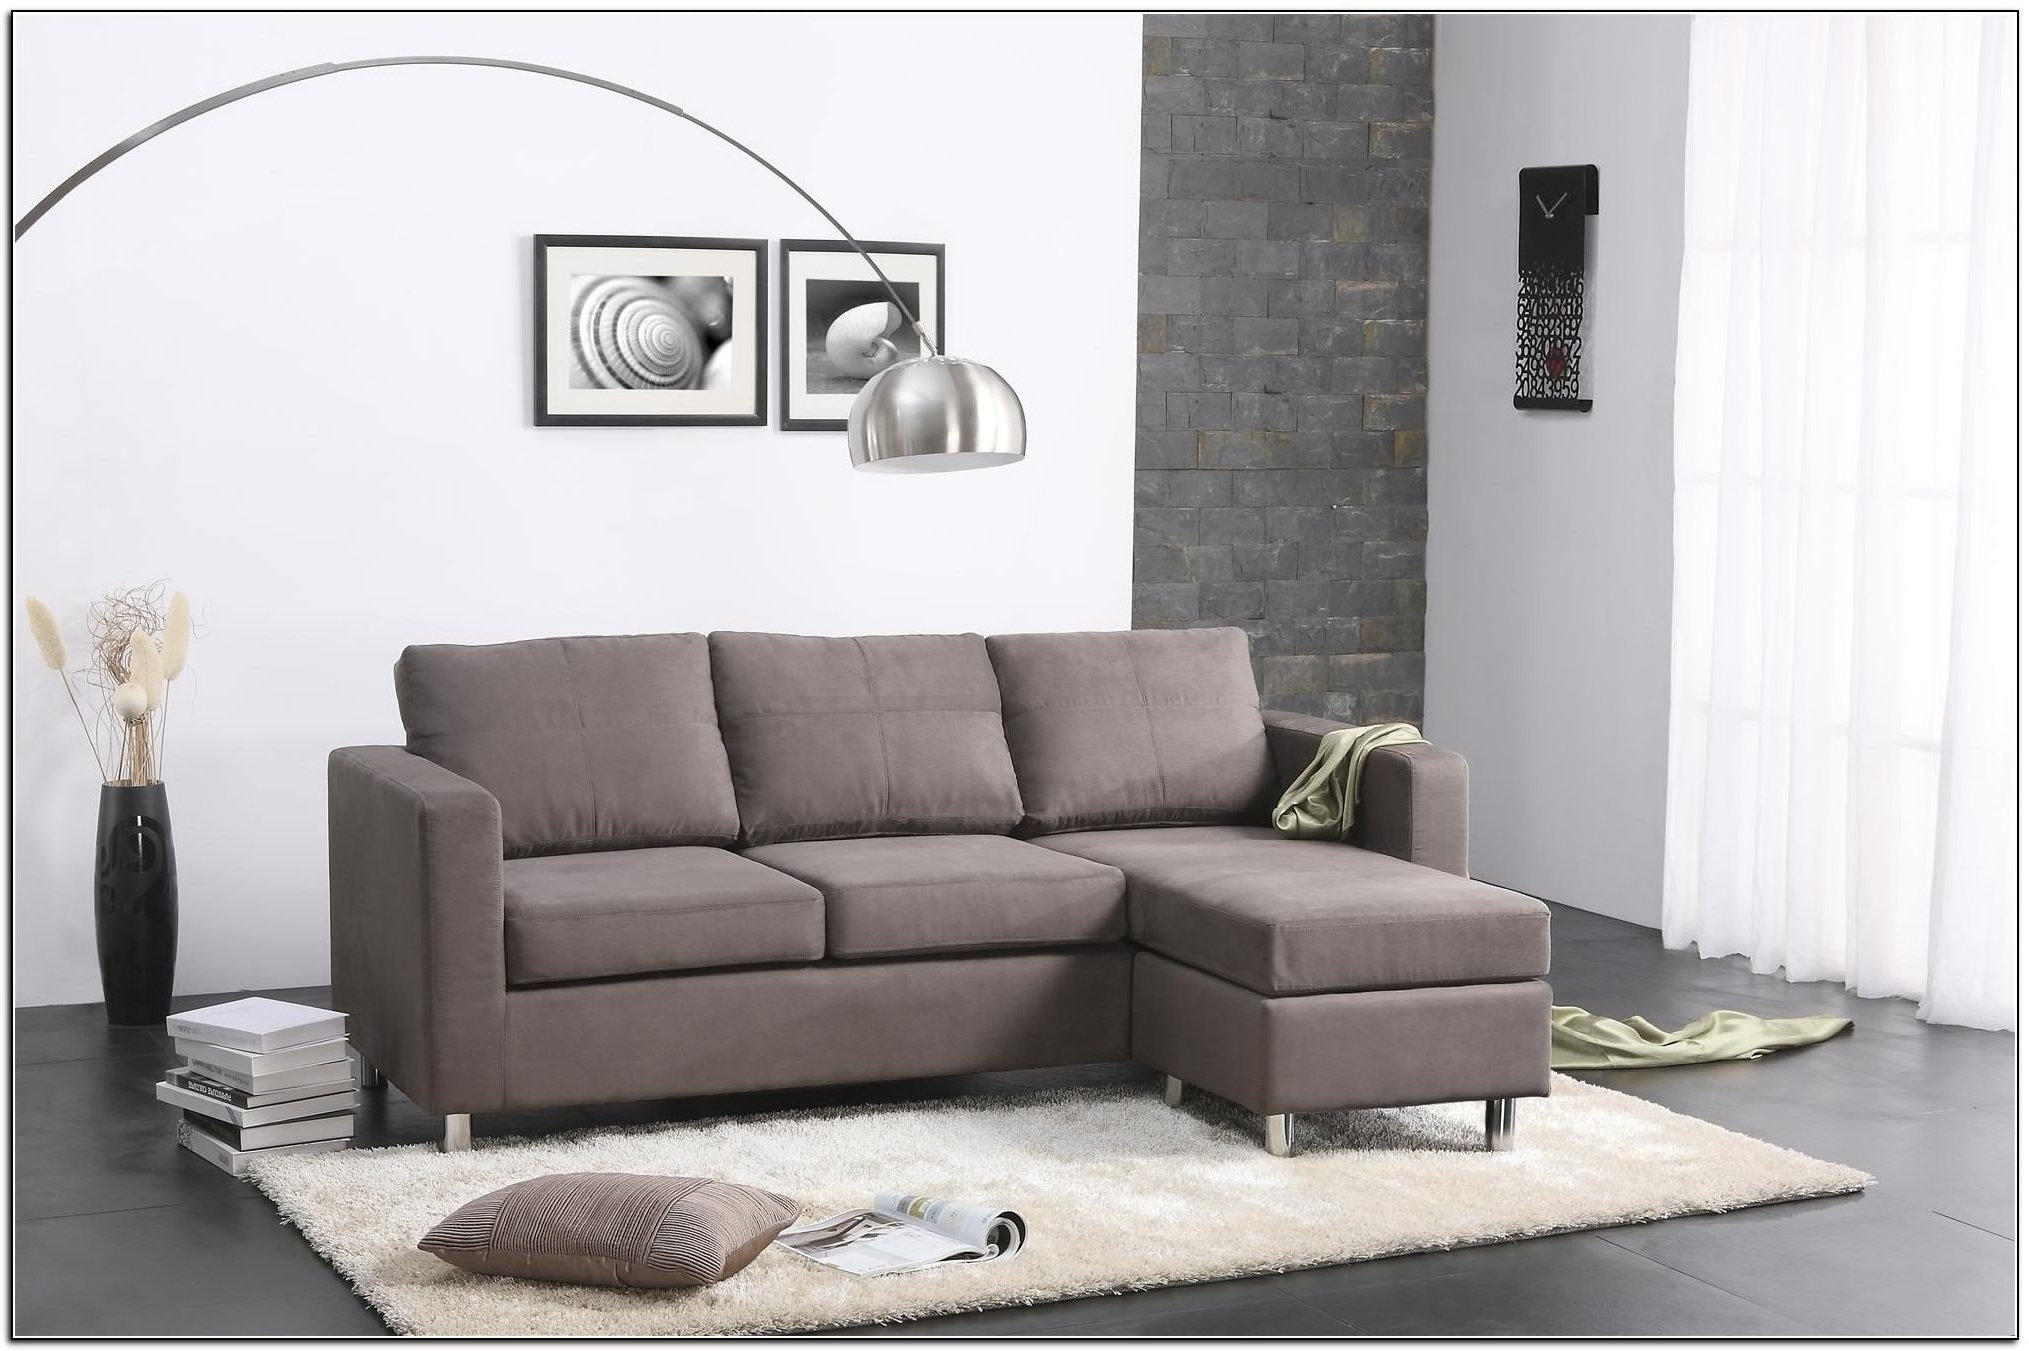 Trendy Sectional Sofa Design: Small Sectional Sofa Cheap Space Couch Pertaining To North Carolina Sectional Sofas (View 9 of 20)